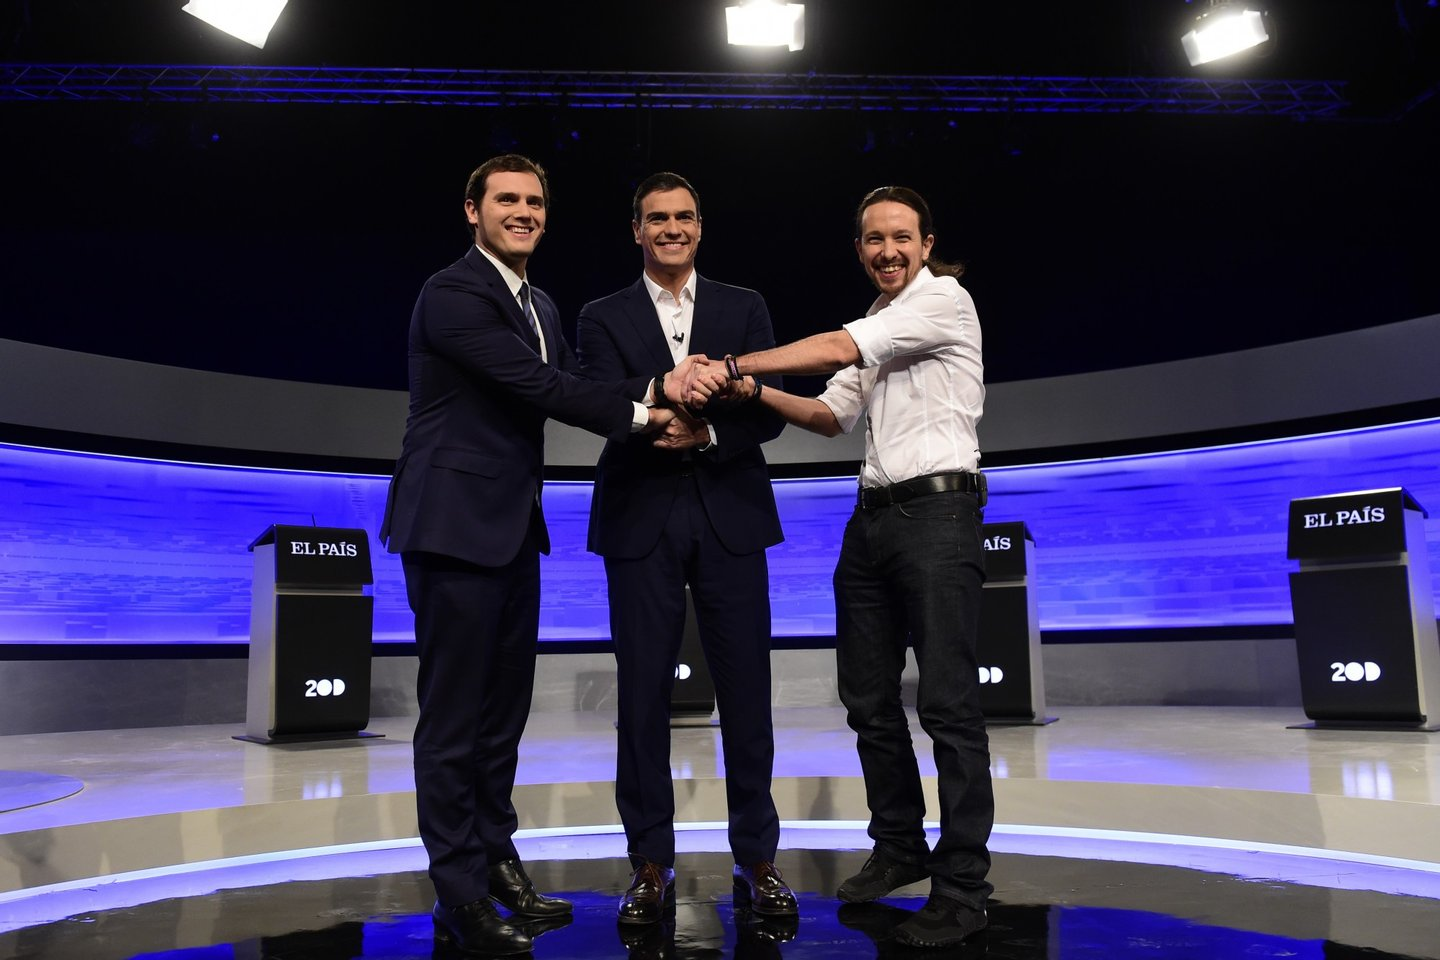 Leader of Spanish Socialist Party (PSOE) Pedro Sanchez (C), leader of left wing party Podemos Pablo Iglesias (R) and center-right party Ciudadanos leader Albert Rivera (L) pose hands in hands before a debate organized by Spanish newspaper El Pais at the F4 Studios at Boadilla del Monte, near Madrid ahead of the Spanish general elections held on December 20, on November 30, 2015. AFP PHOTO/ JAVIER SORIANO / AFP / JAVIER SORIANO (Photo credit should read JAVIER SORIANO/AFP/Getty Images)